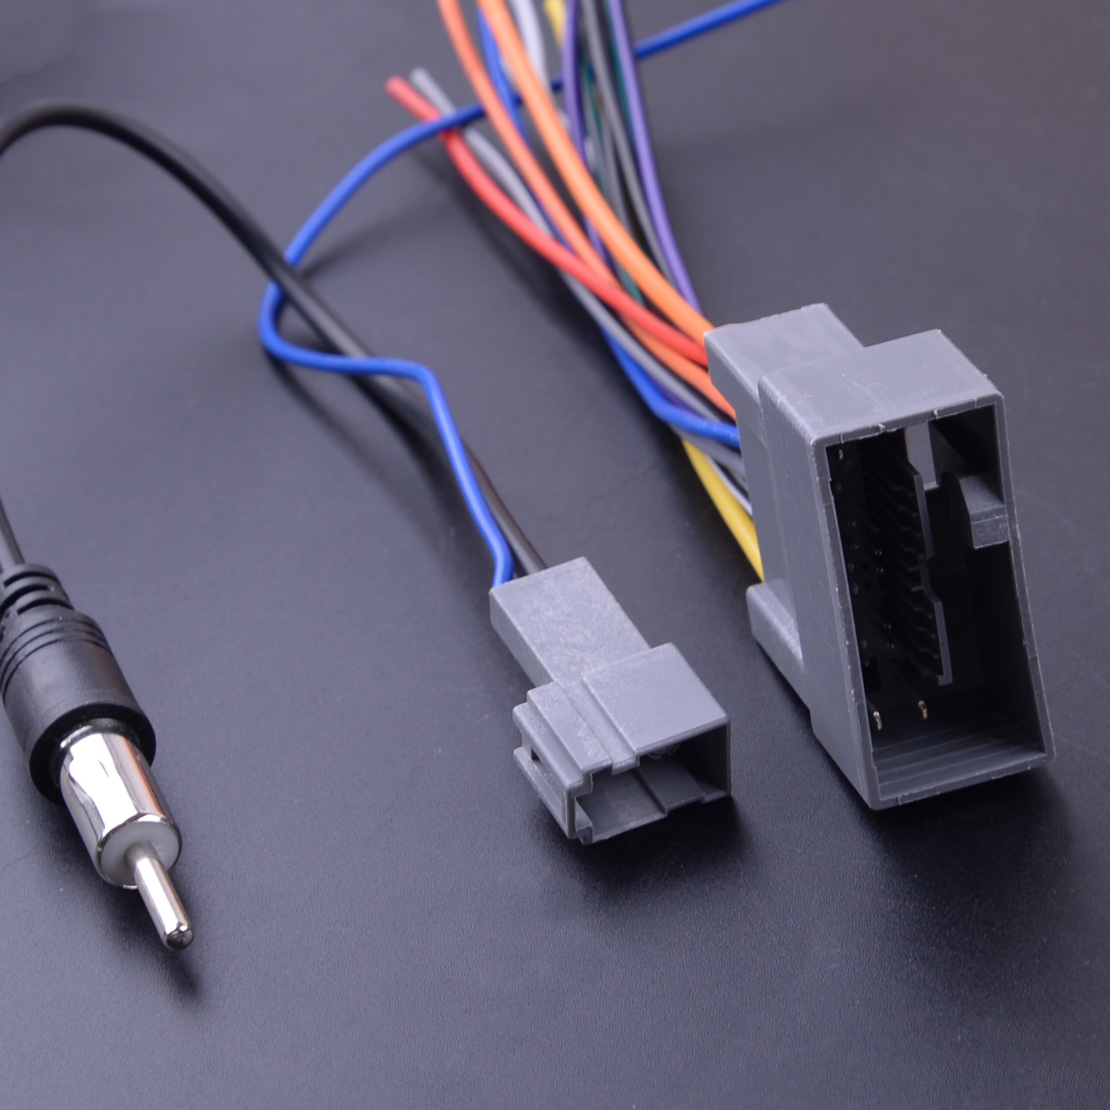 2 pcs Radio Stereo Wire Wiring Harness <font><b>Cable</b></font> Antenna <font><b>Adapter</b></font> Connector Fit For <font><b>Honda</b></font> Civic CRV Odyssey Jazz Acura TSX image